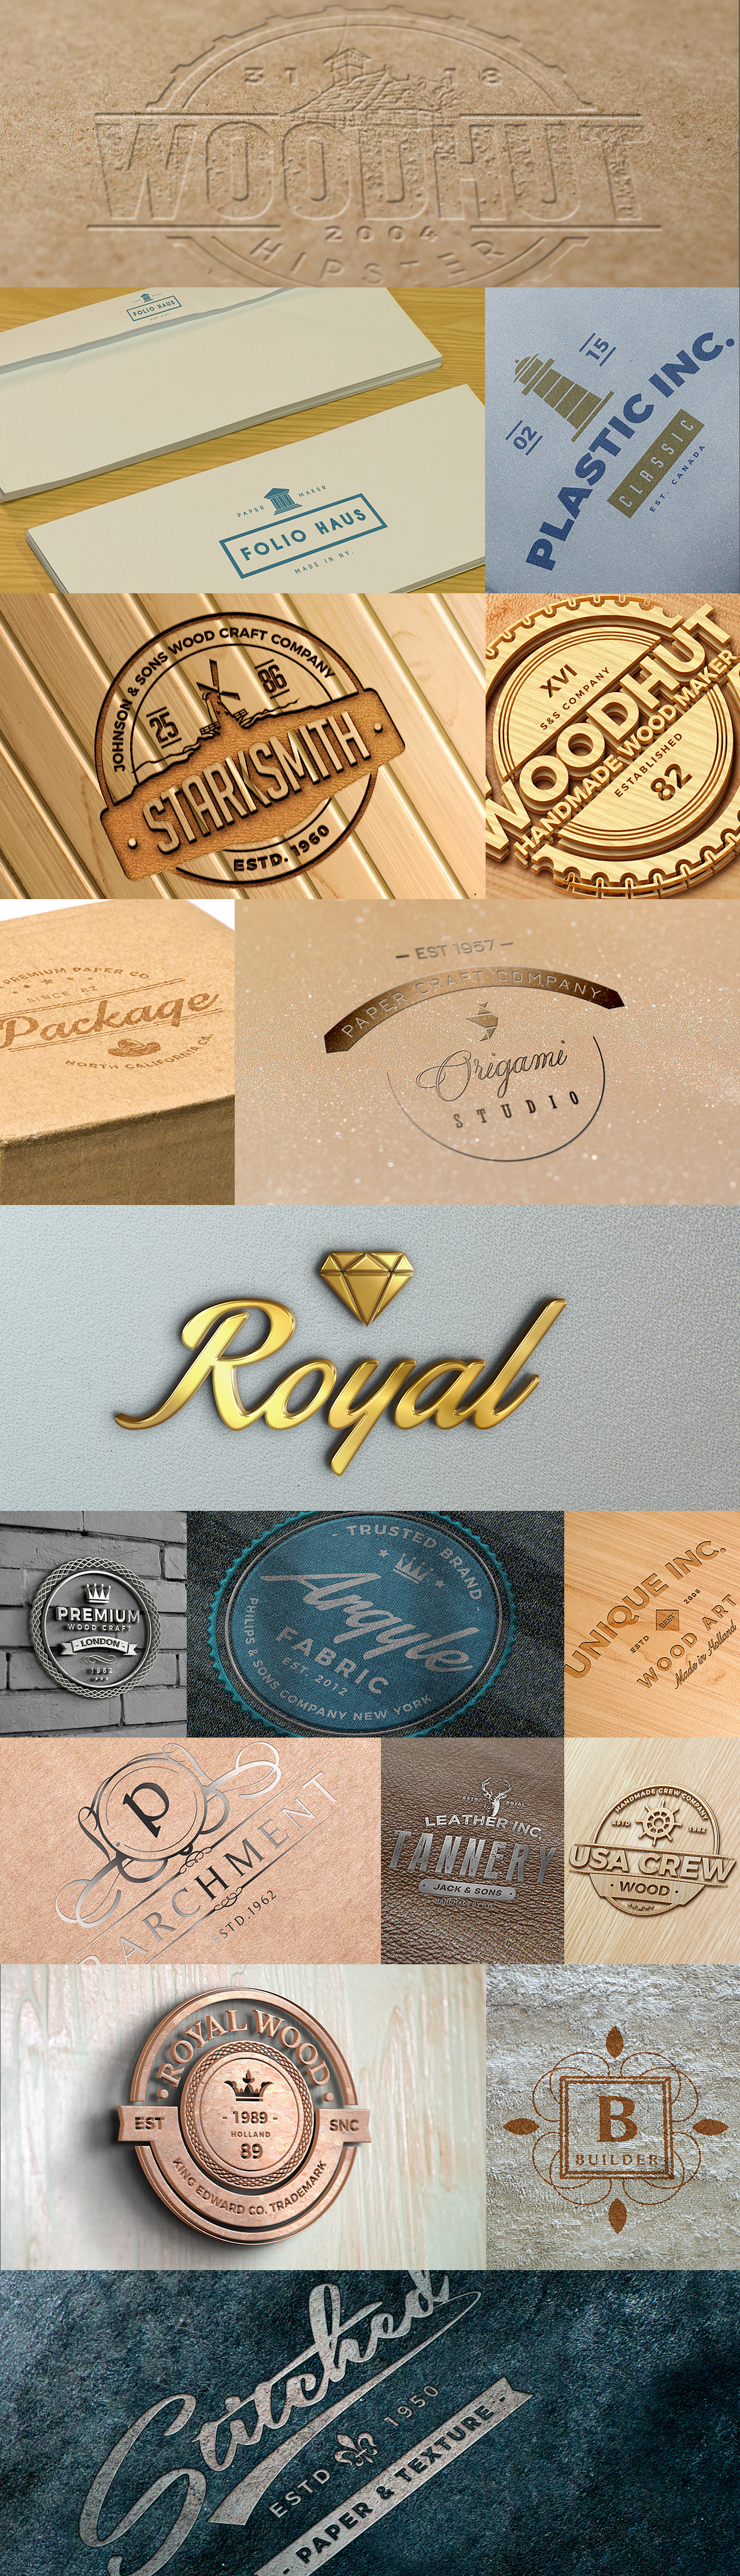 Logo Mockups with Carved, Engraved, Embossed, Silver and Gold effects on wooden and brick walls